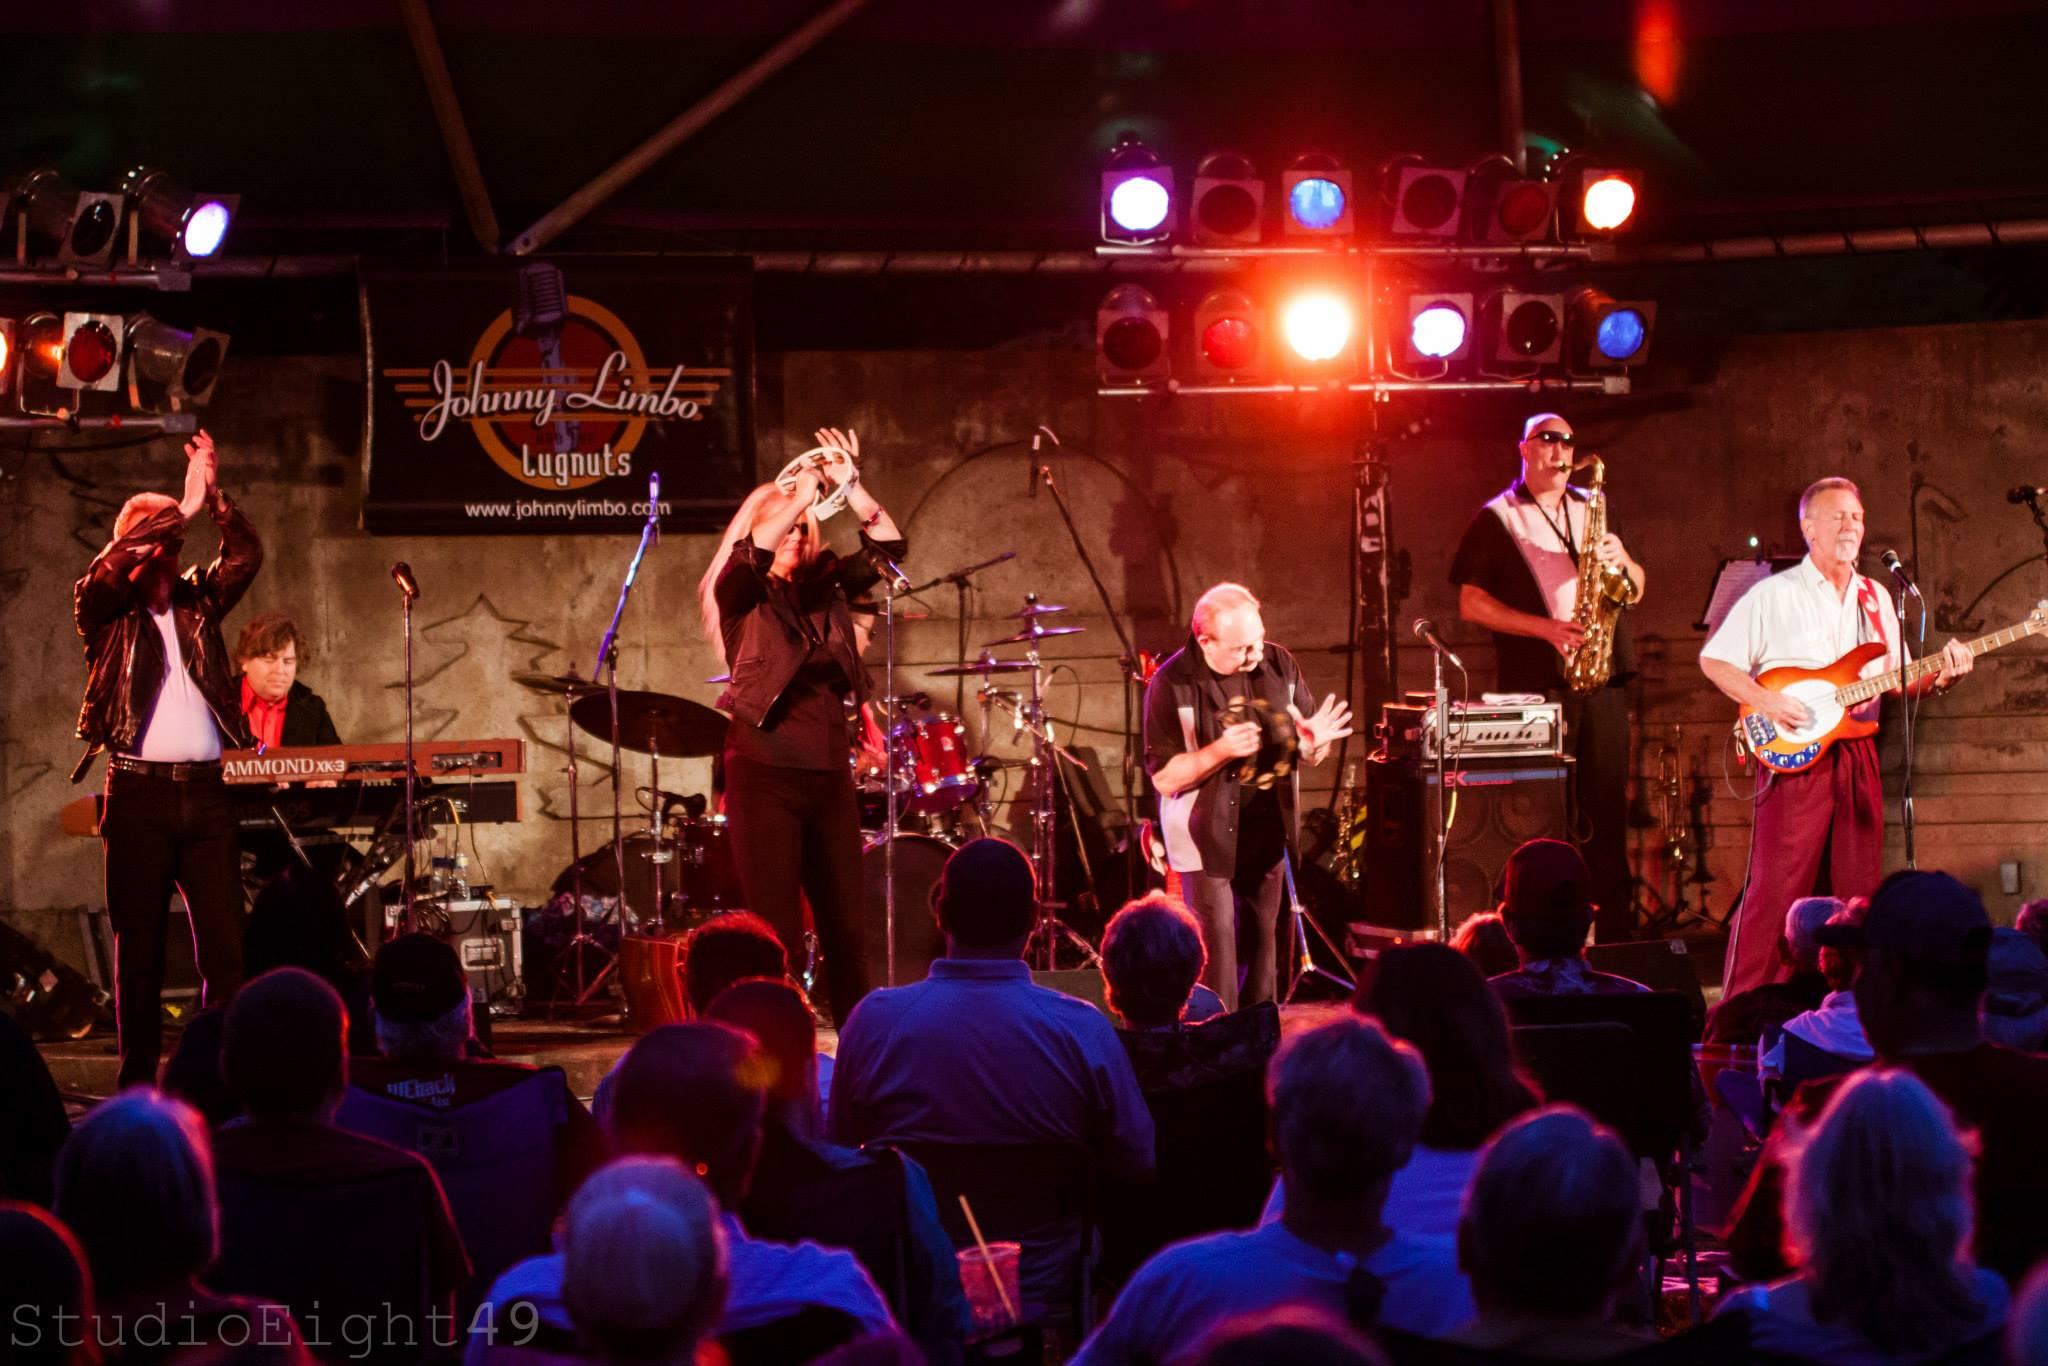 Johnny Limbo and the Lugnuts 2019 Tour Schedule